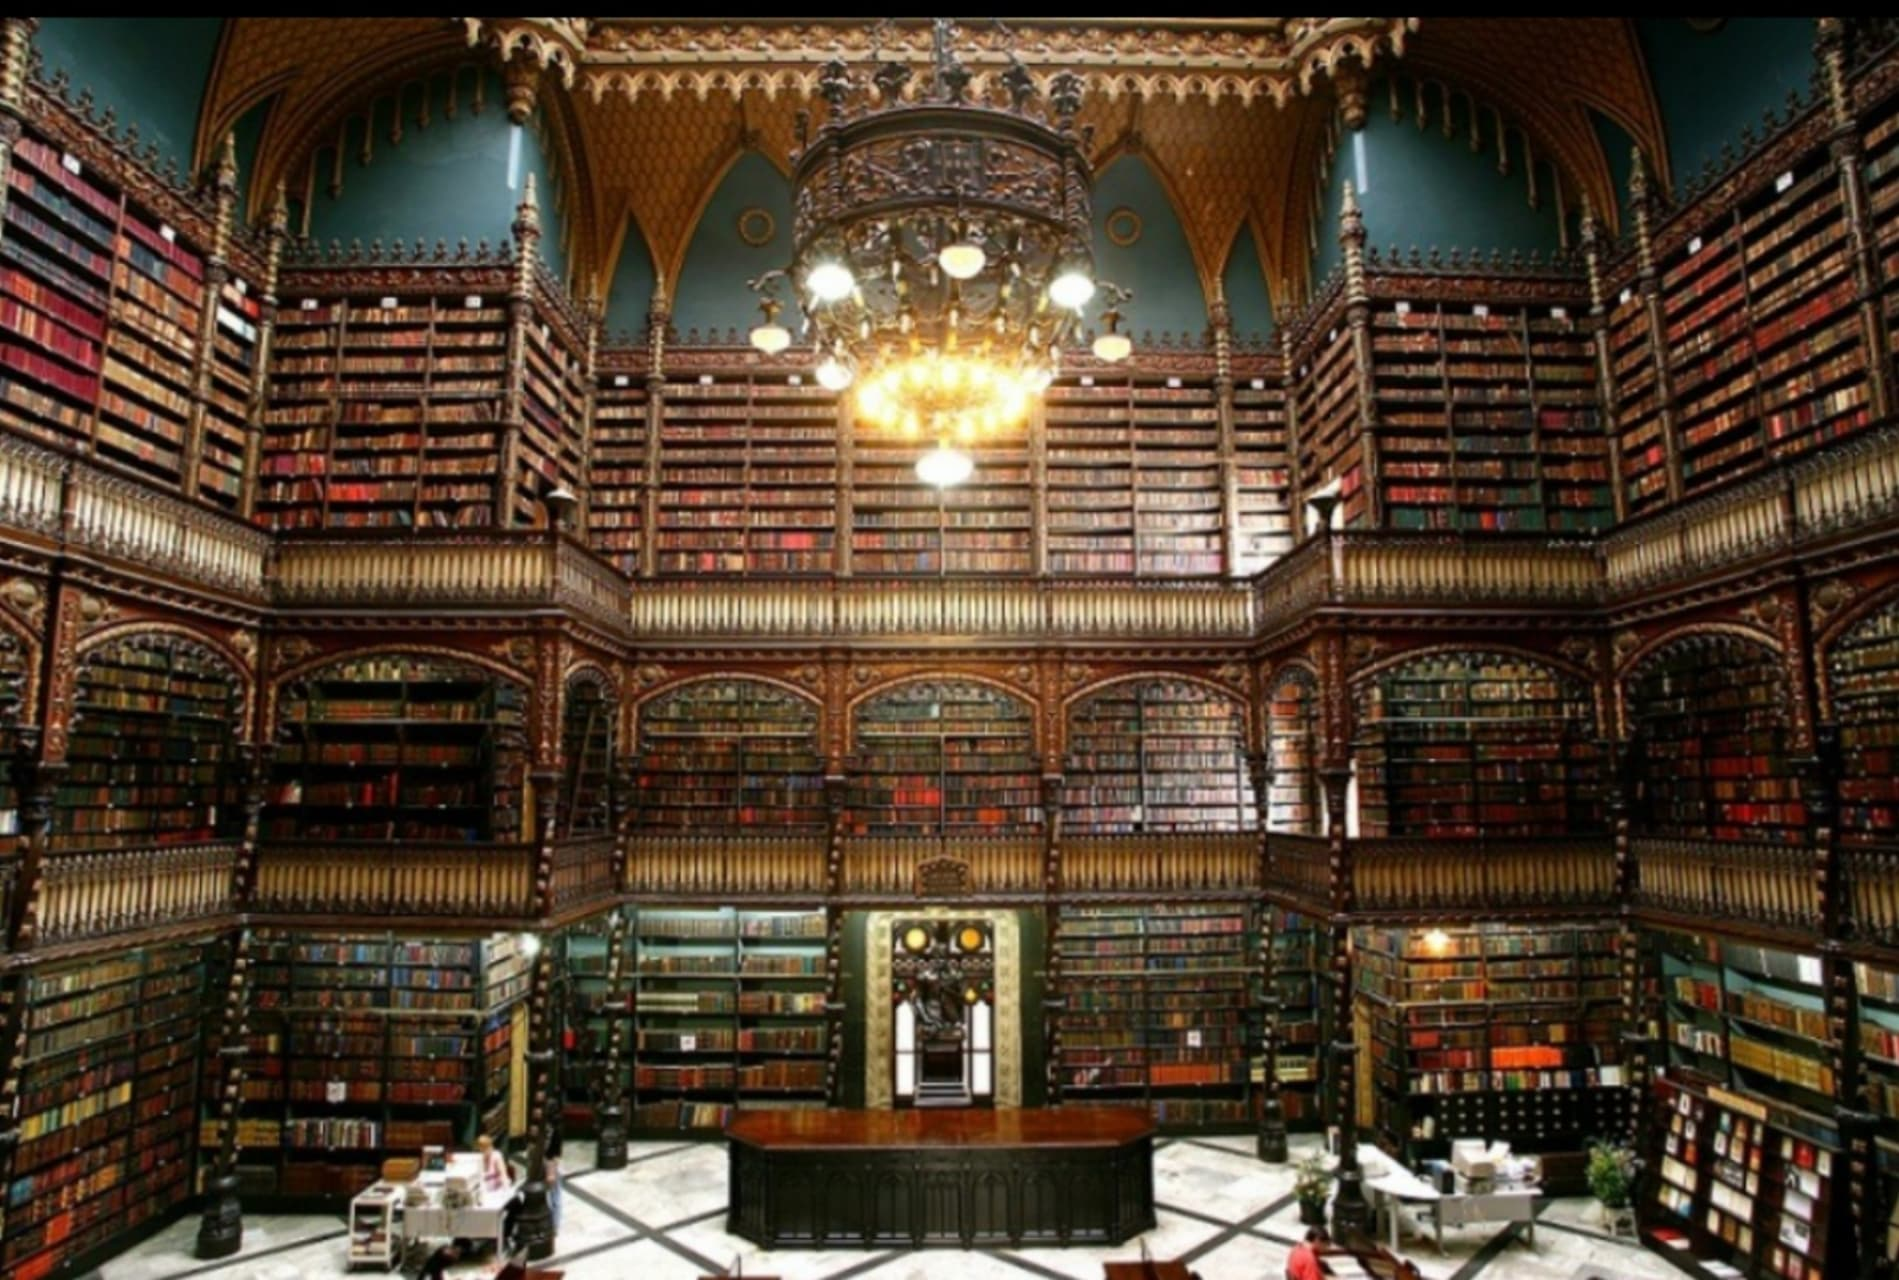 Rio de Janeiro - Royal Portuguese Reading Room: One of the 20th most Beautiful Libraries in the World